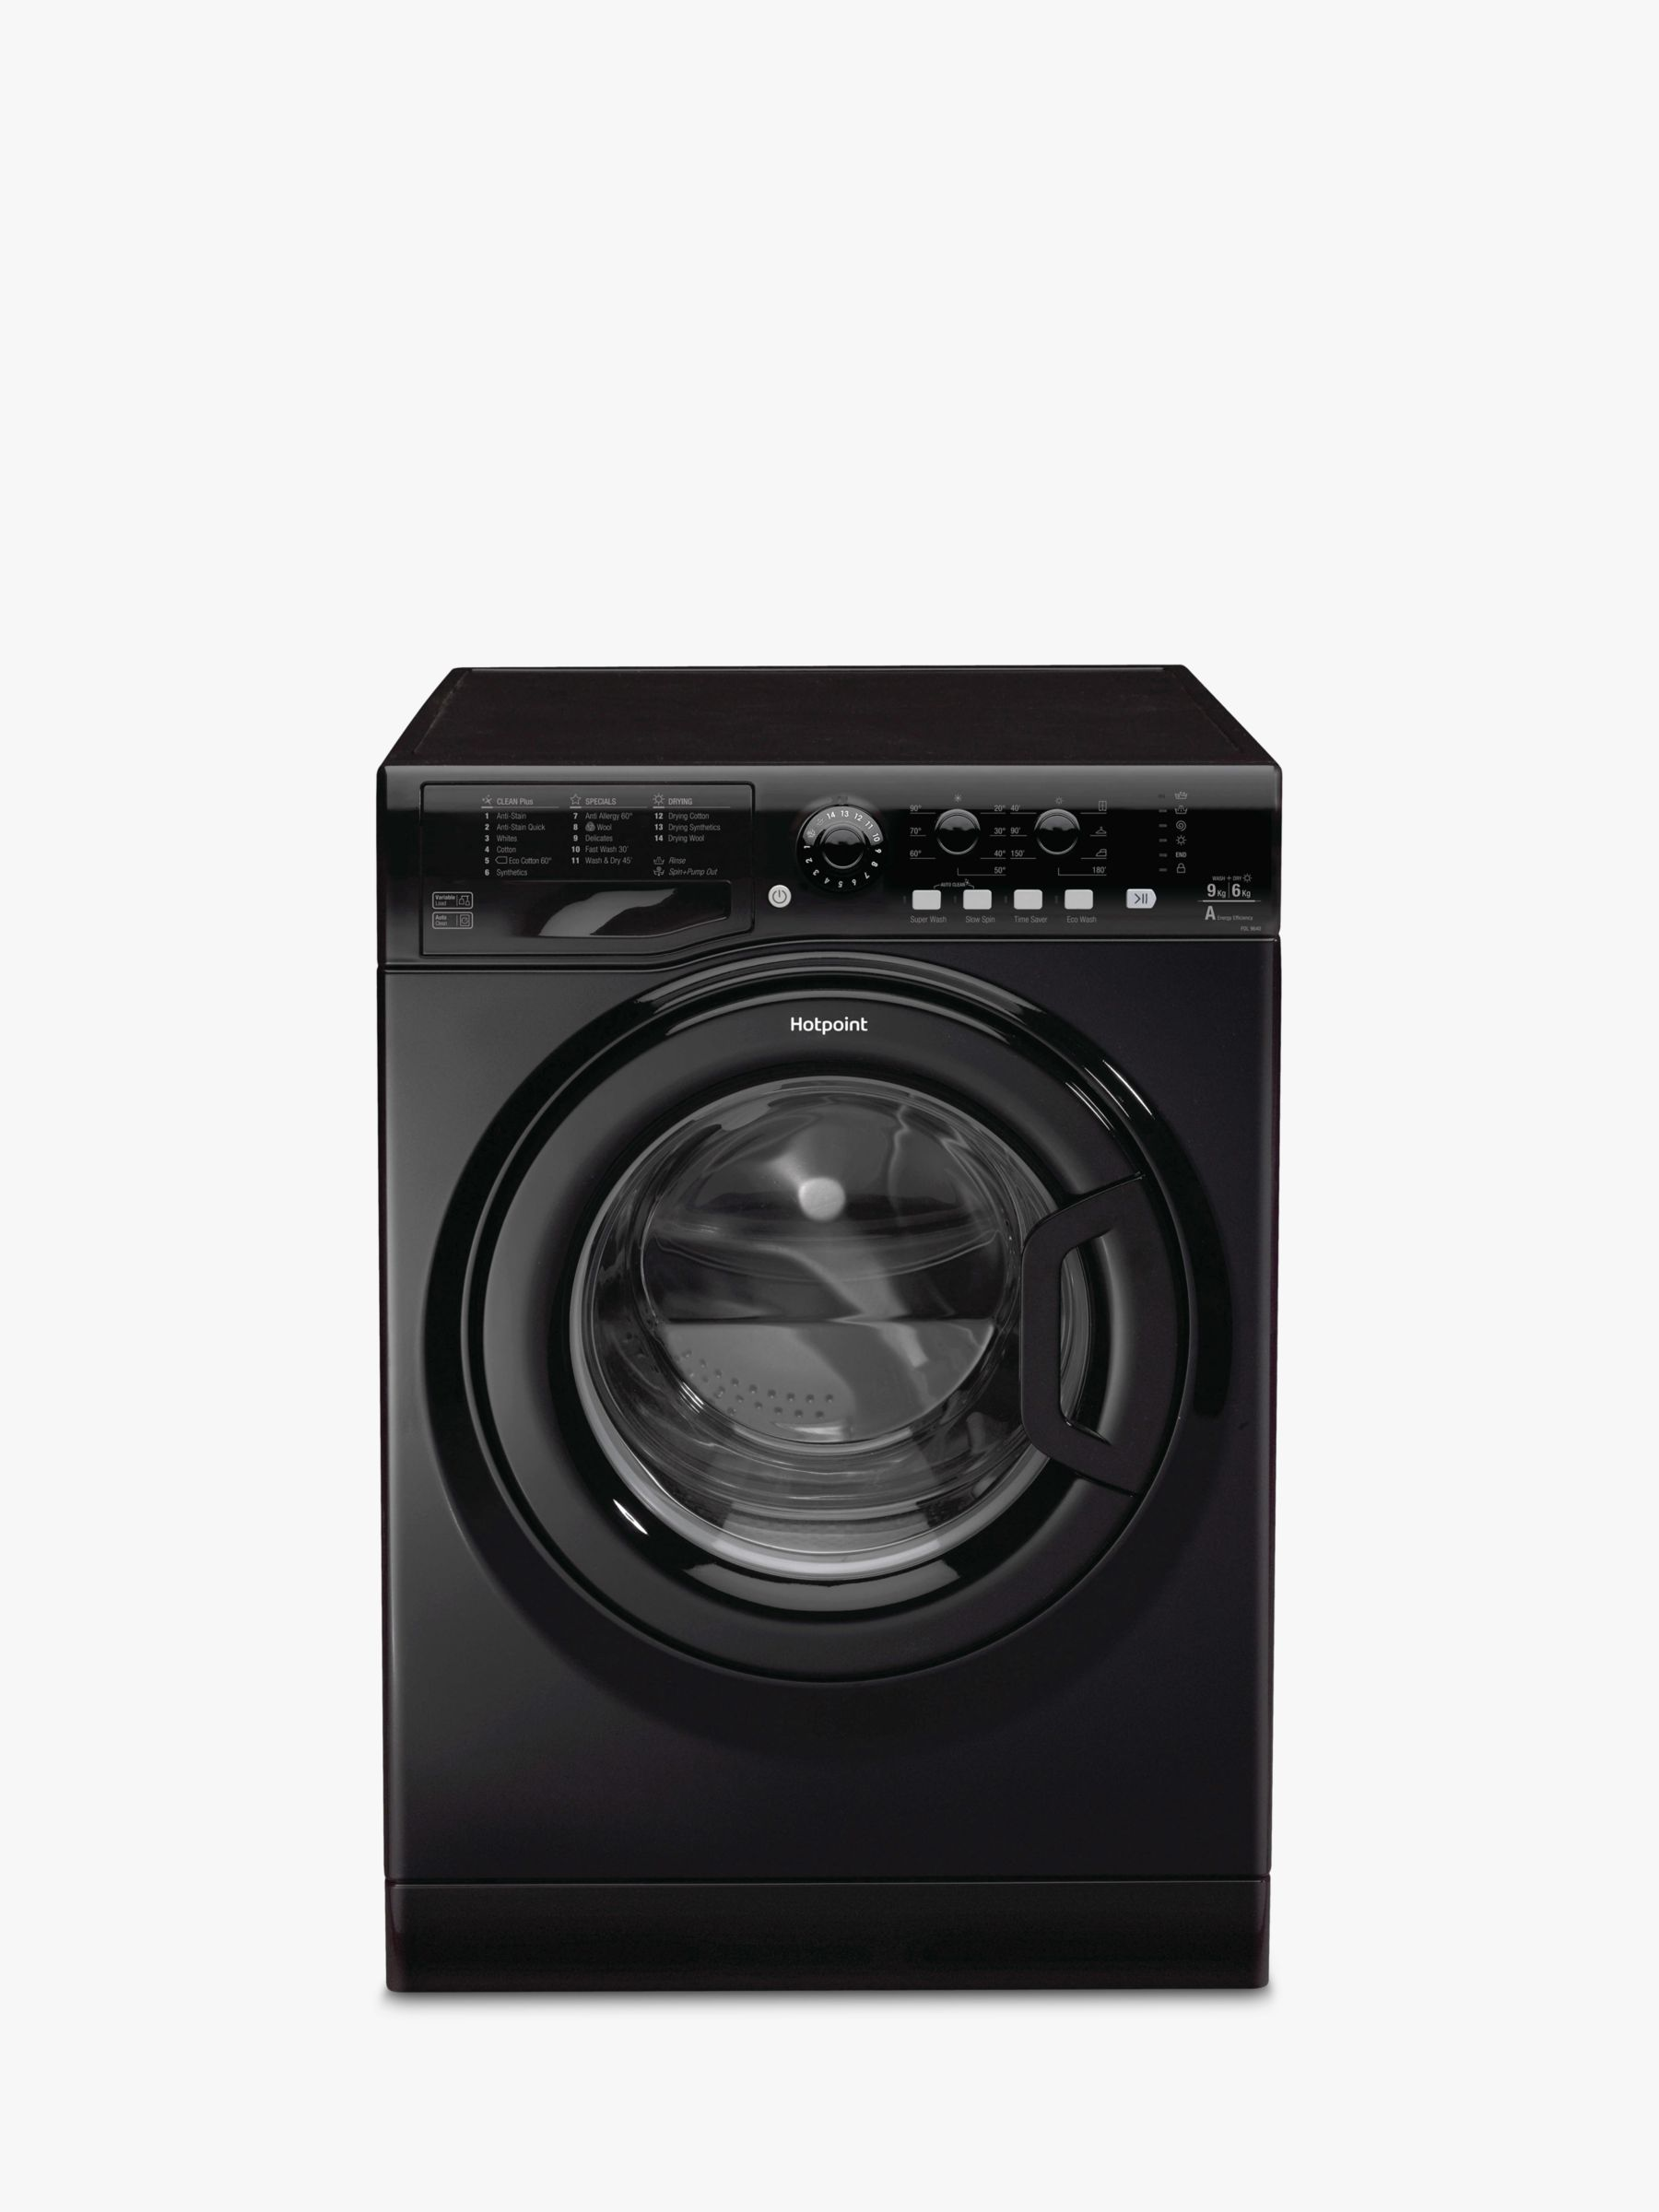 Hotpoint Hotpoint FDL9640KUK Aquarius Washer Dryer, 9kg Wash/6kg Dry Load, A Energy Rating, 1400rpm Spin, Matte Black